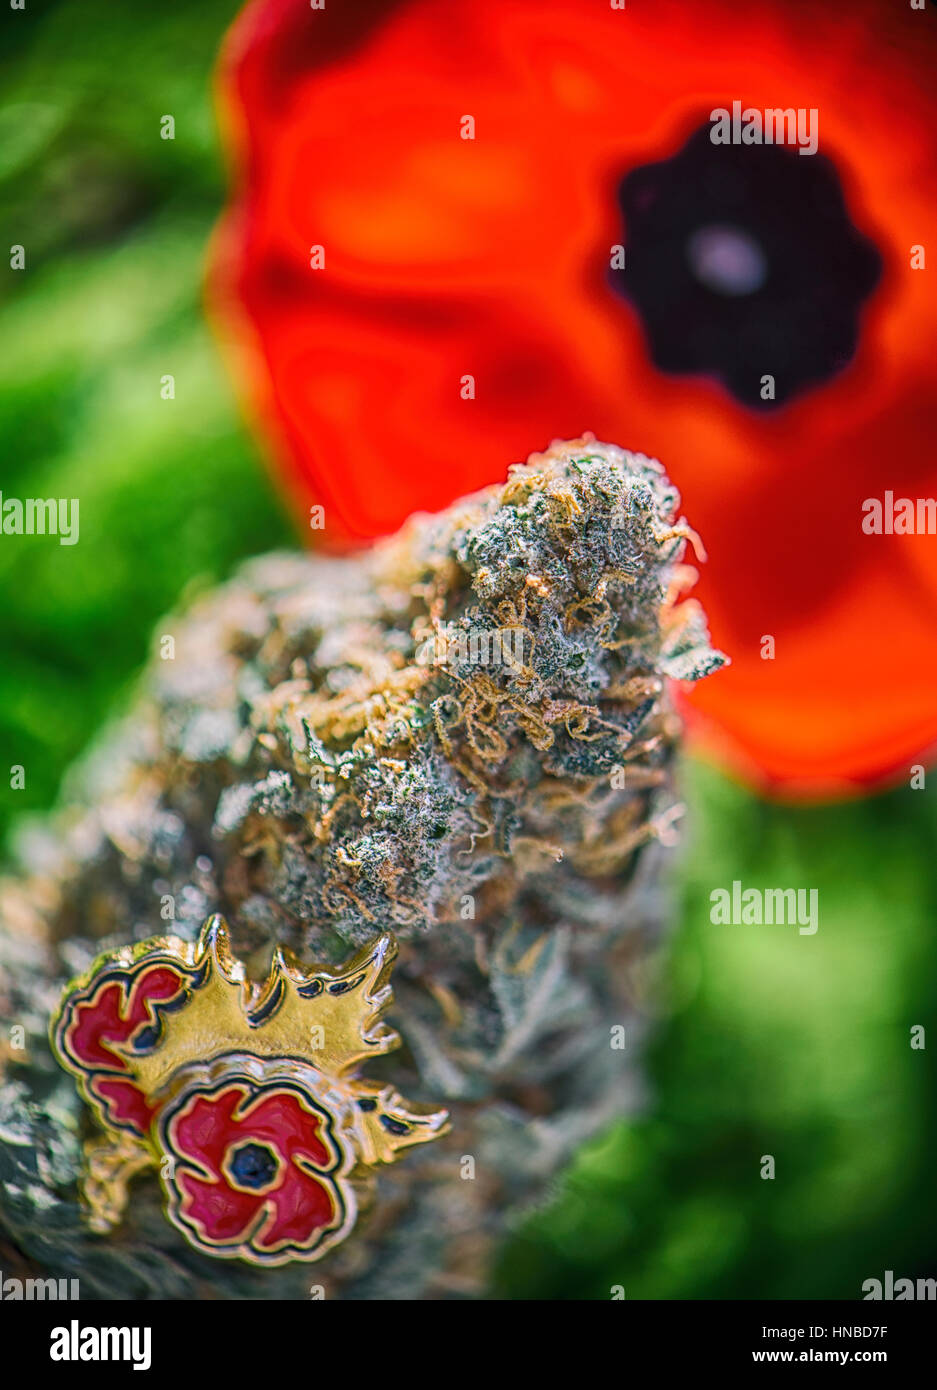 Detail of cannabis bud in front of a poppy flower - medical marijuana for veterans concept - Stock Image